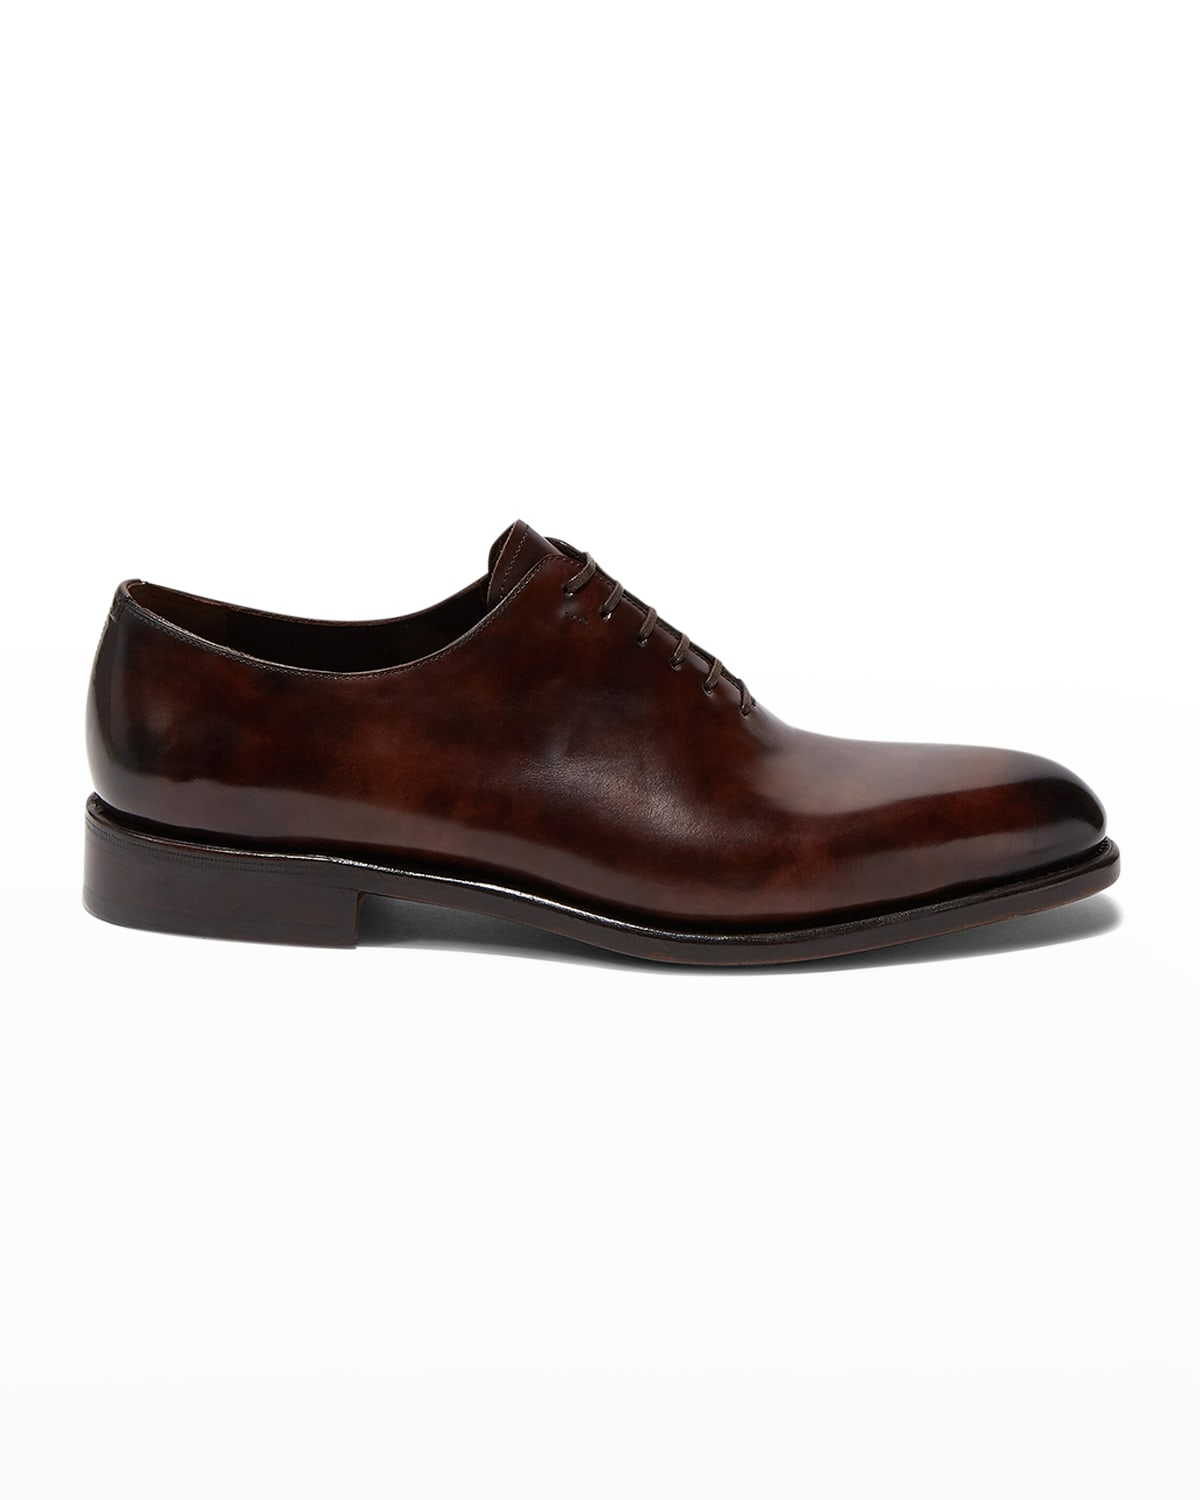 Men's Angiolo Tramezza Whole-Cut Leather Lace-Up Shoes